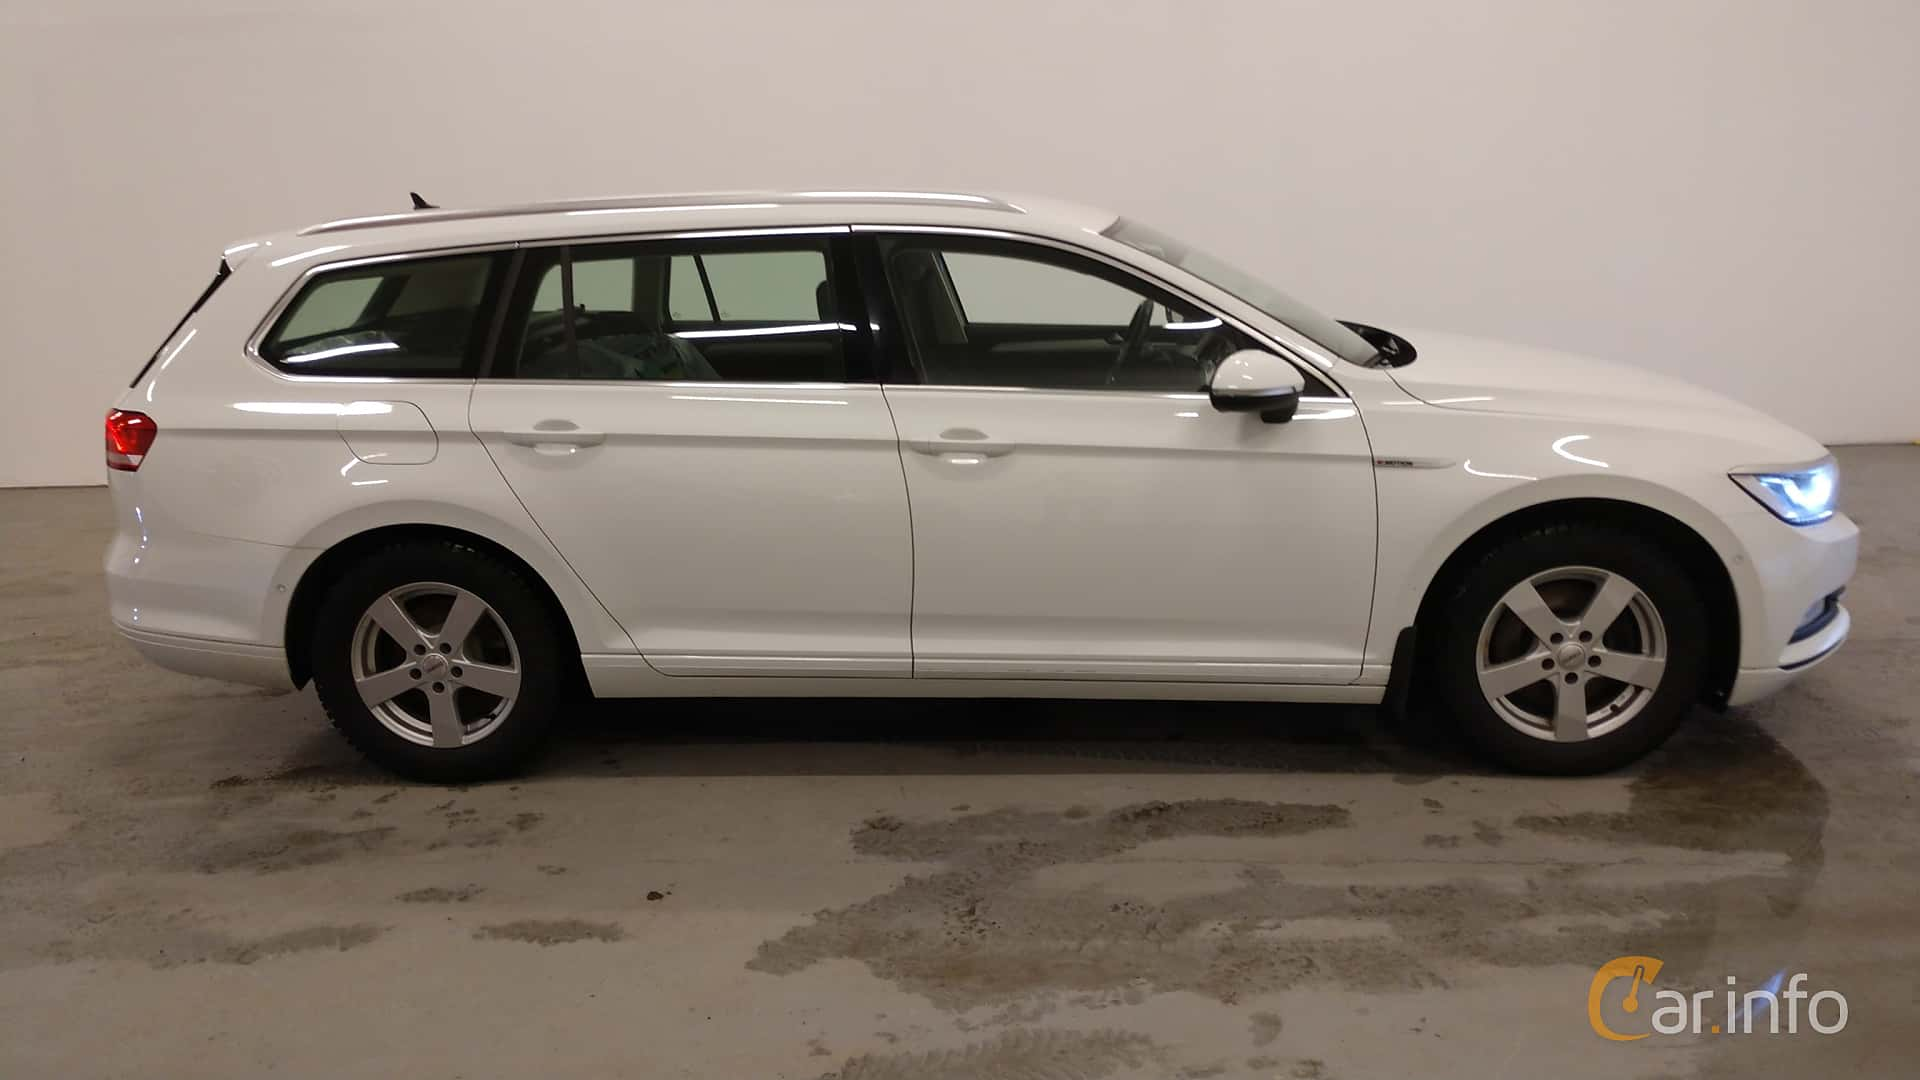 Volkswagen Passat Variant 2.0 TDI BlueMotion 4Motion Manual, 150hp, 2016